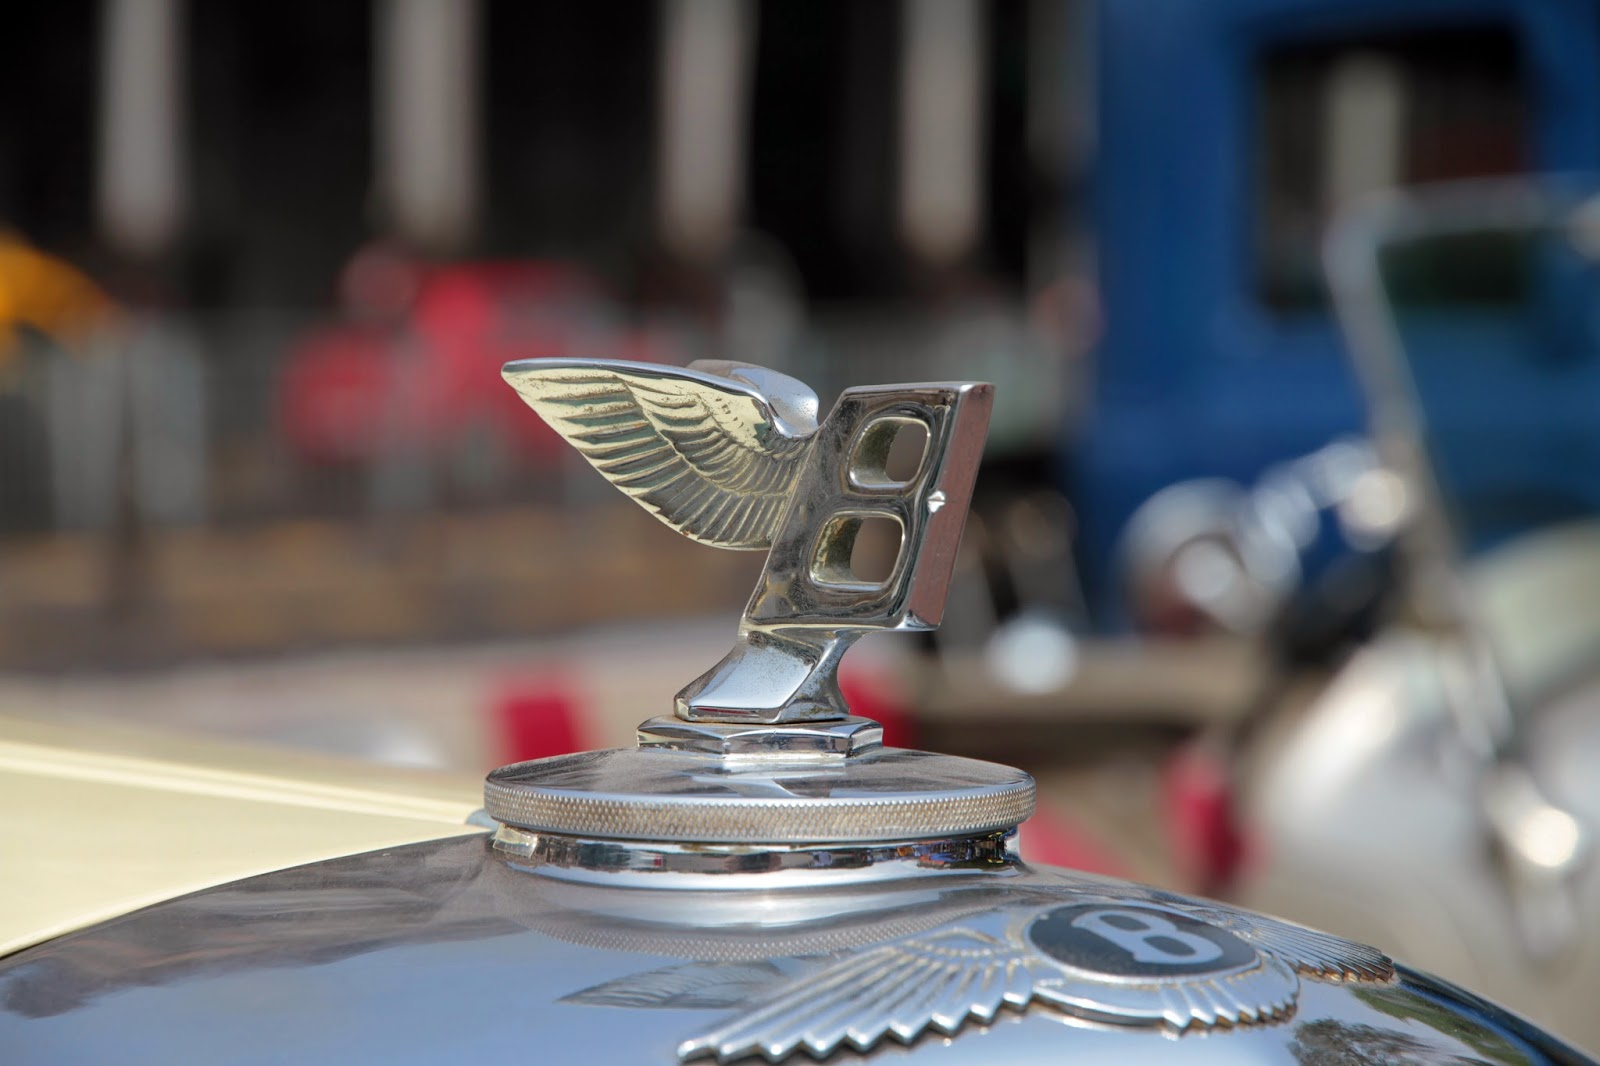 Bently hood ornament parked at Kala Ghoda, Mumbai